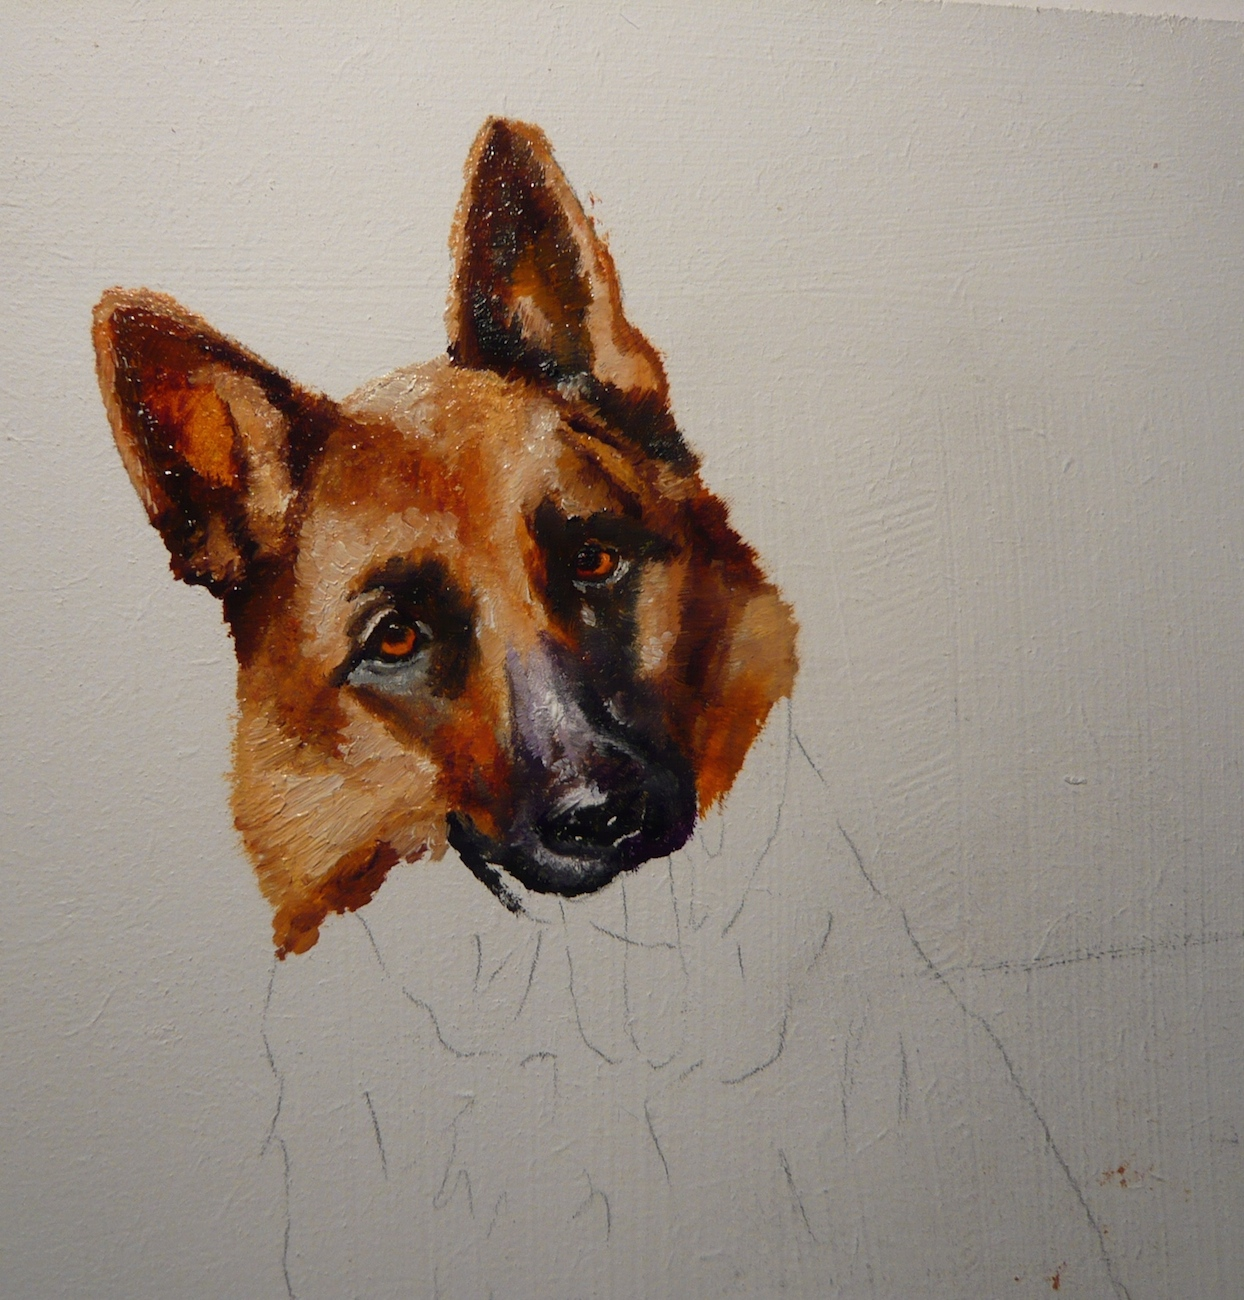 oil painting of a German Shepherd: work-in-progress stage 3. A pet painting by Karen.